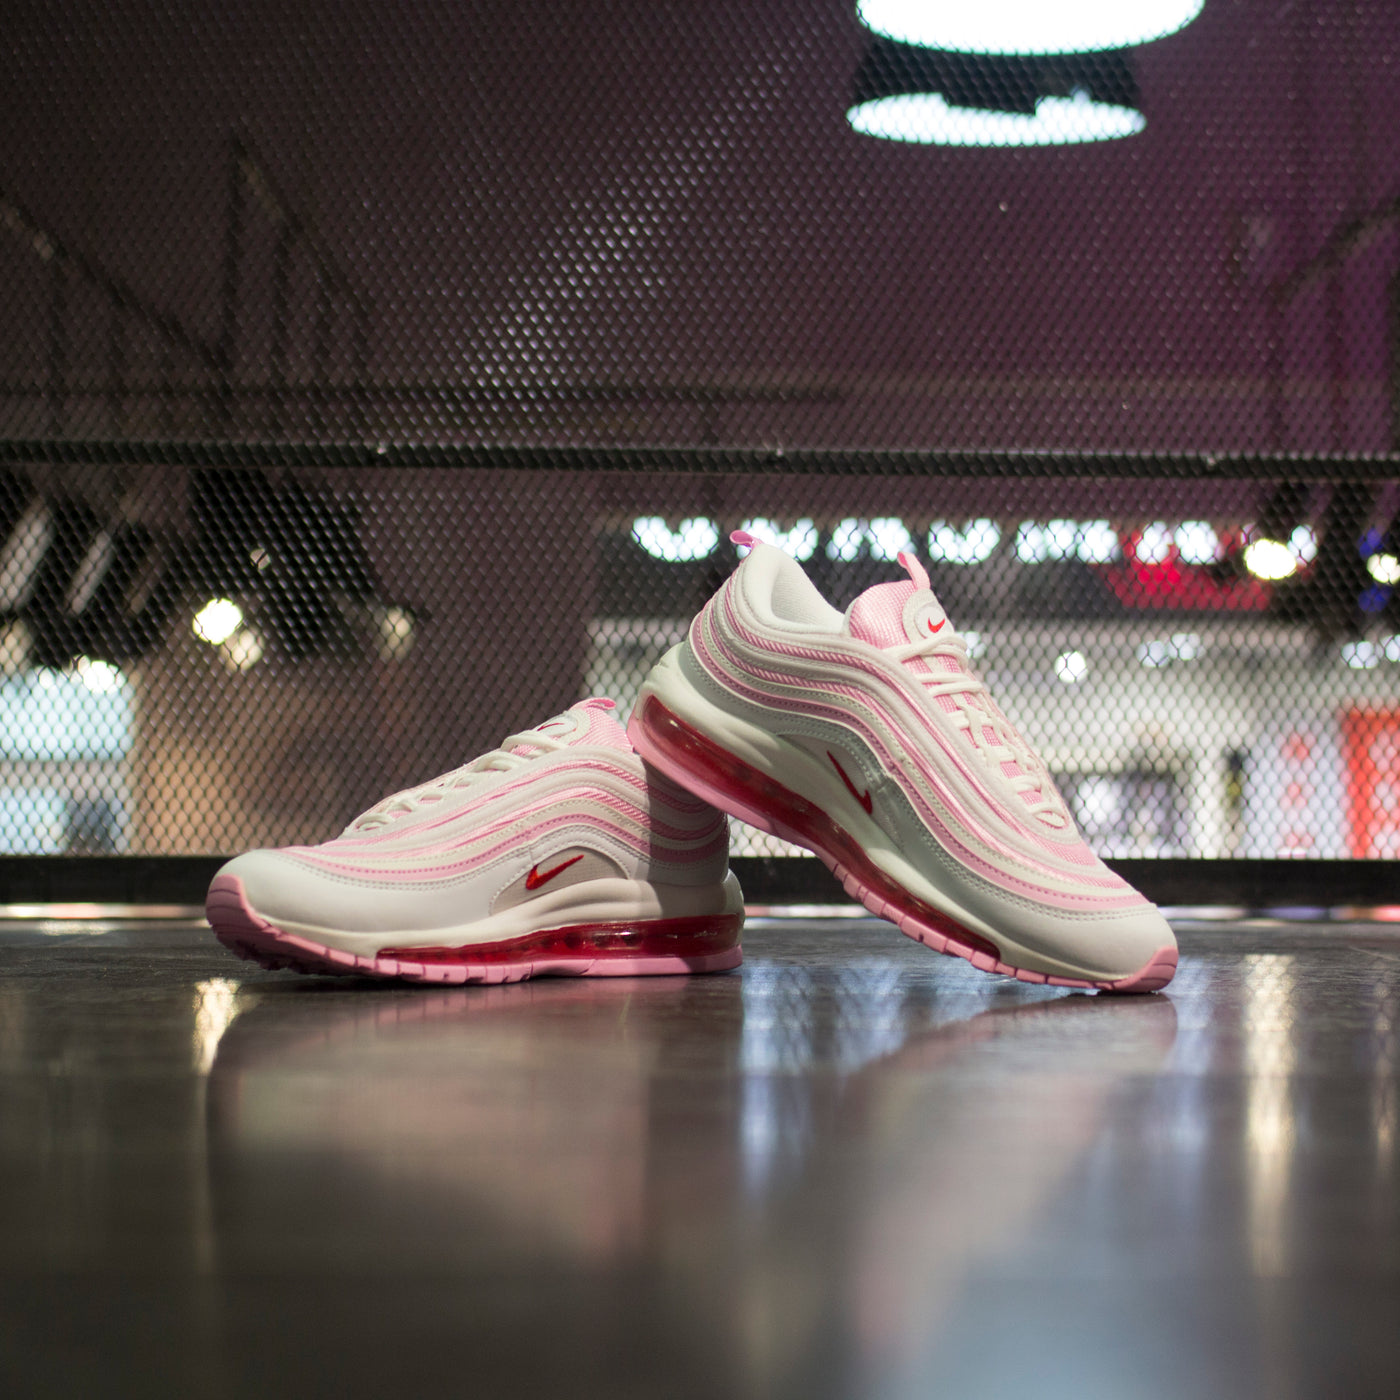 Faaqidaad : Pink and white air max 97 valentines day